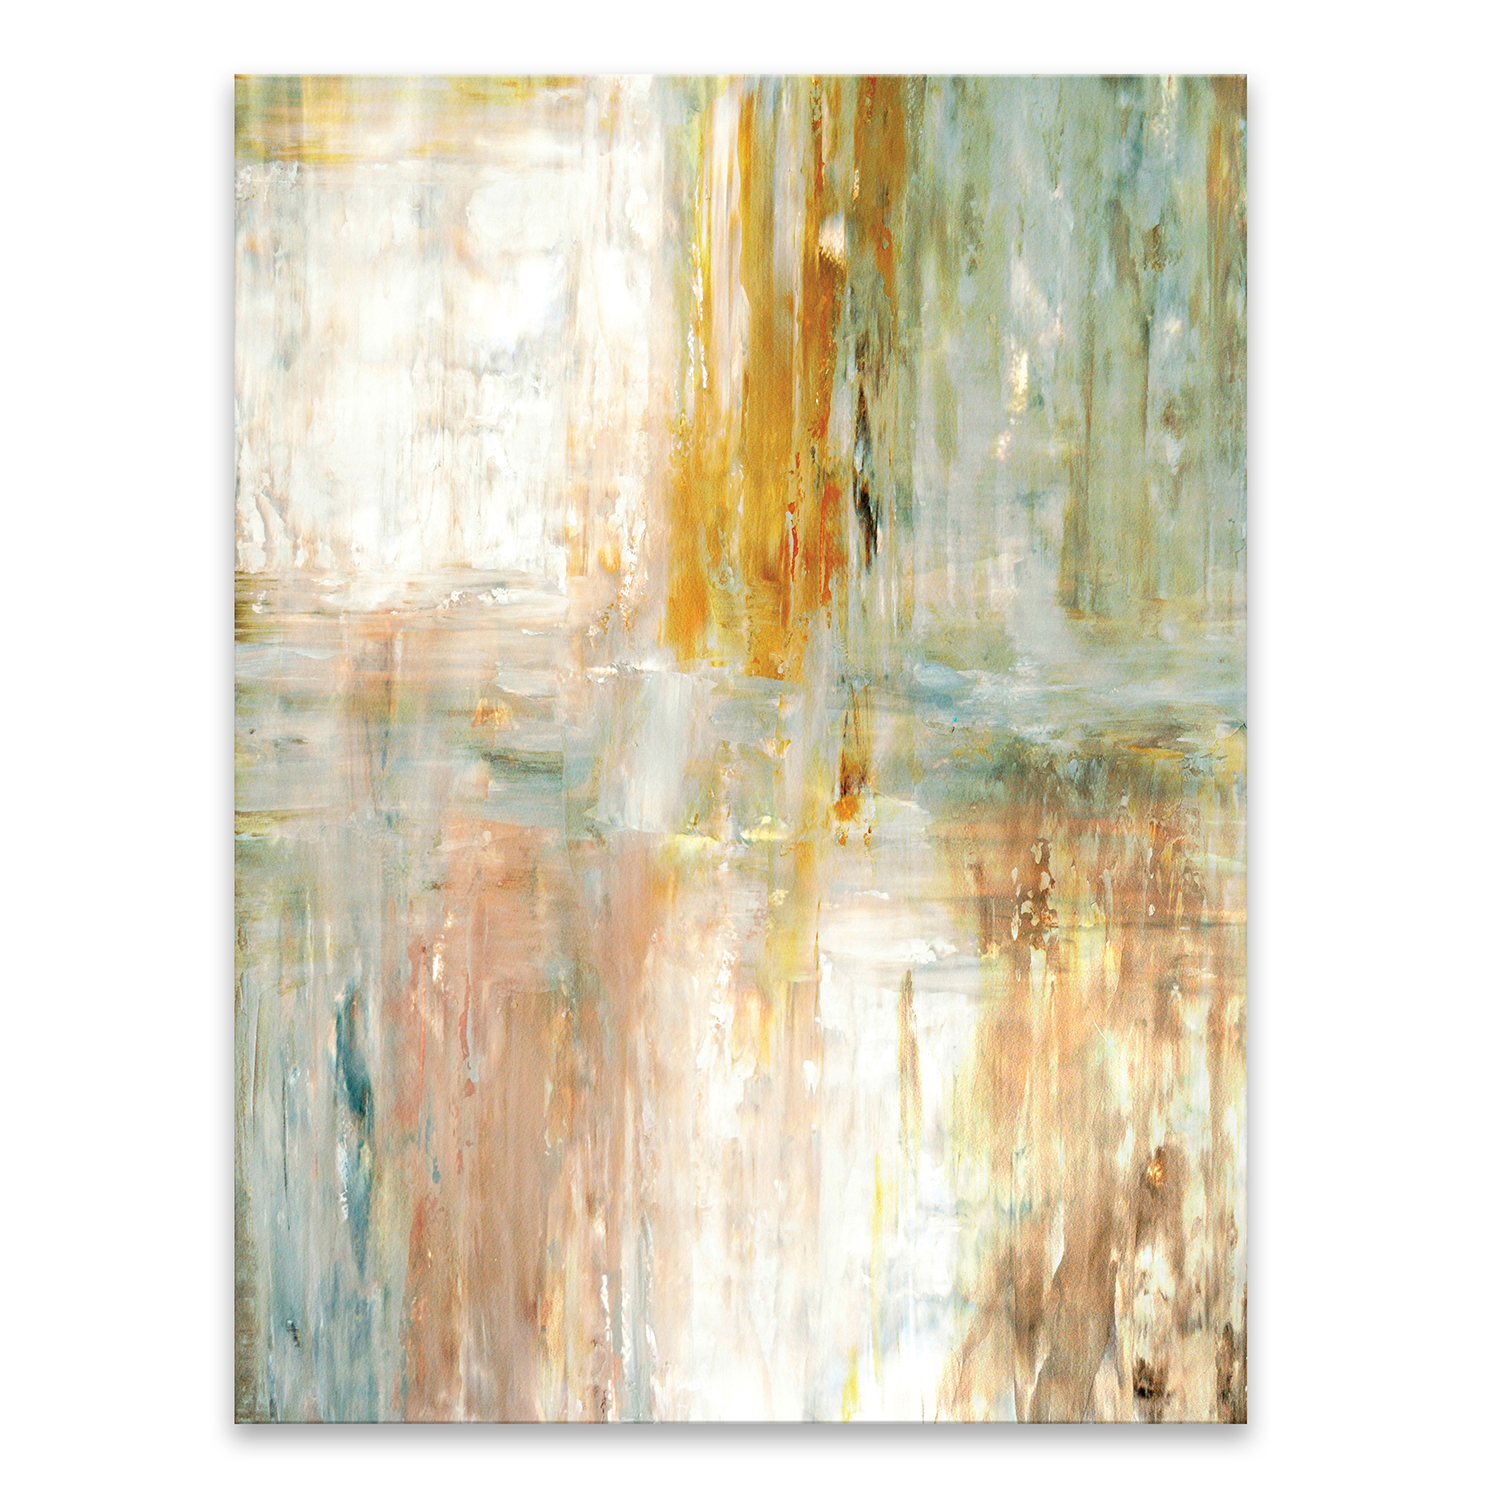 Teal & Green Abstract Printed Acrylic Wall Art